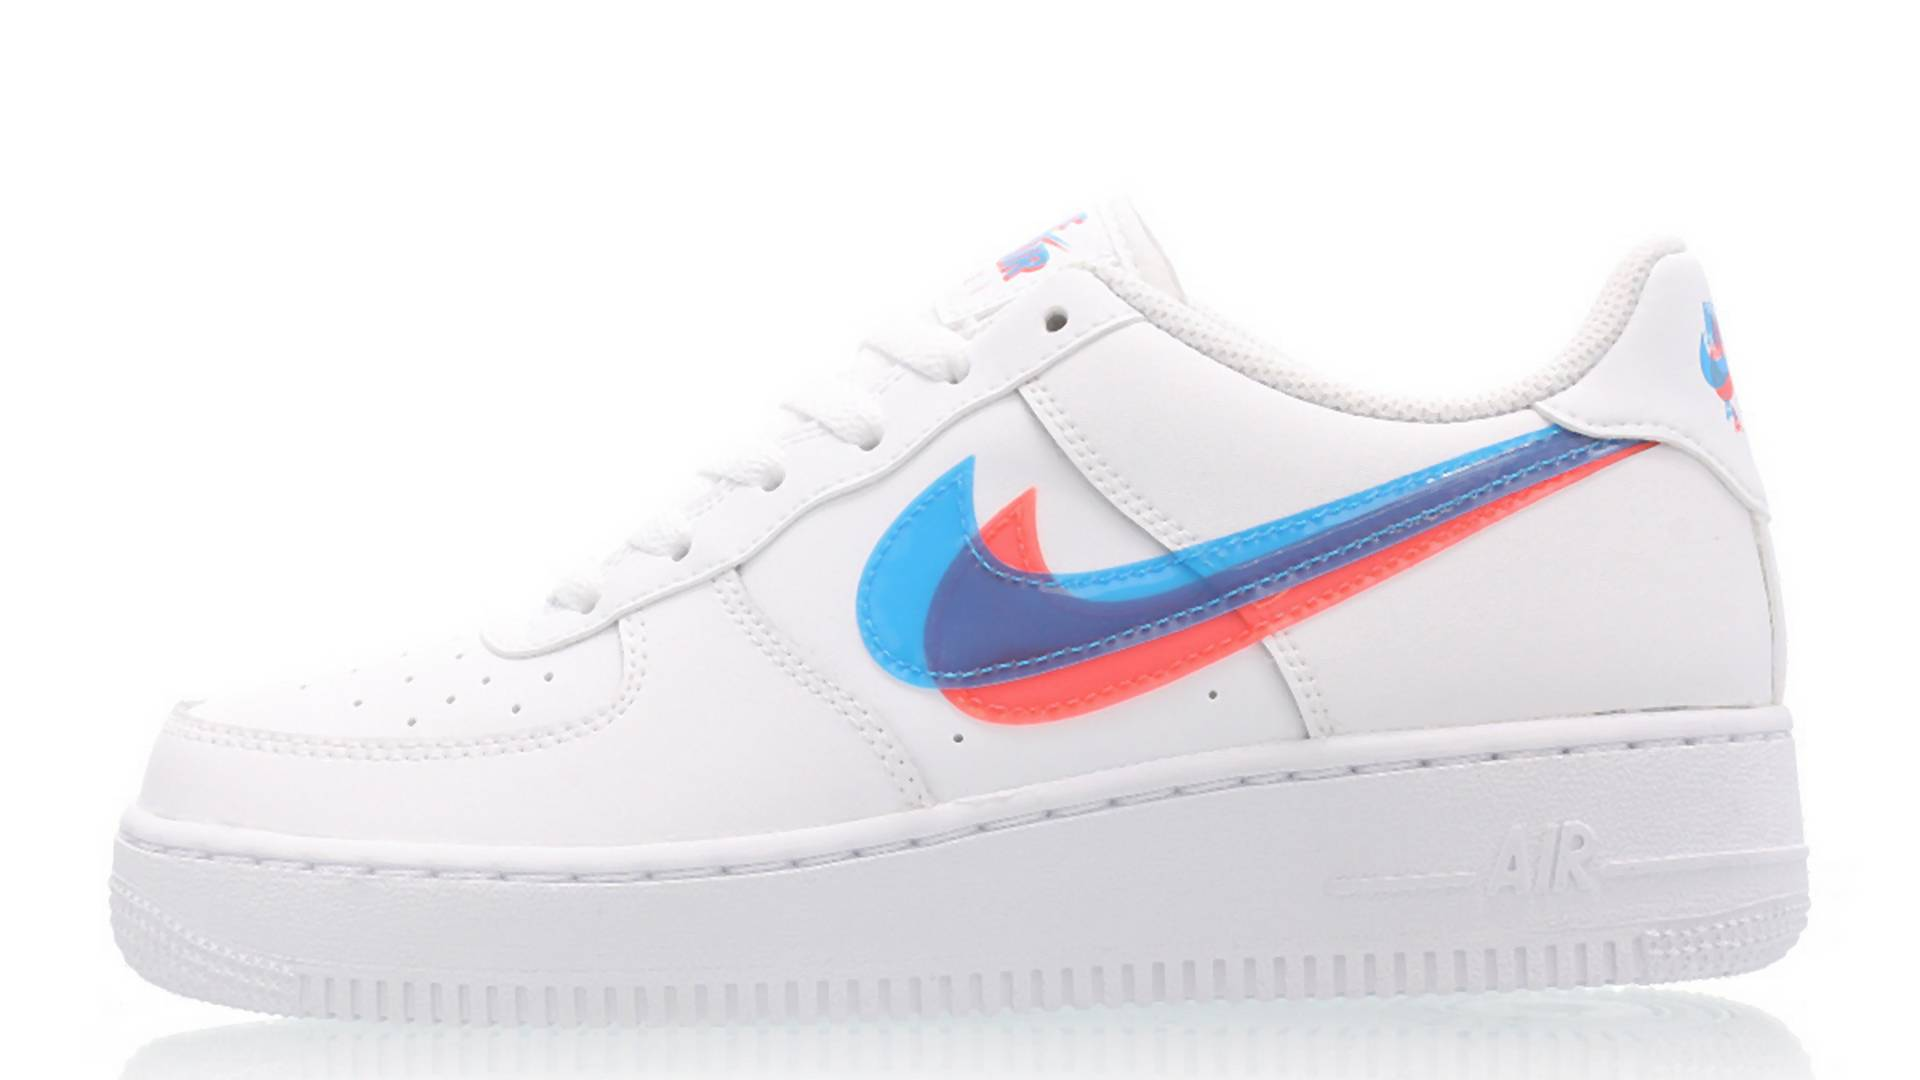 Dieser neue Nike Air Force 1 kommt in 3D-Optik